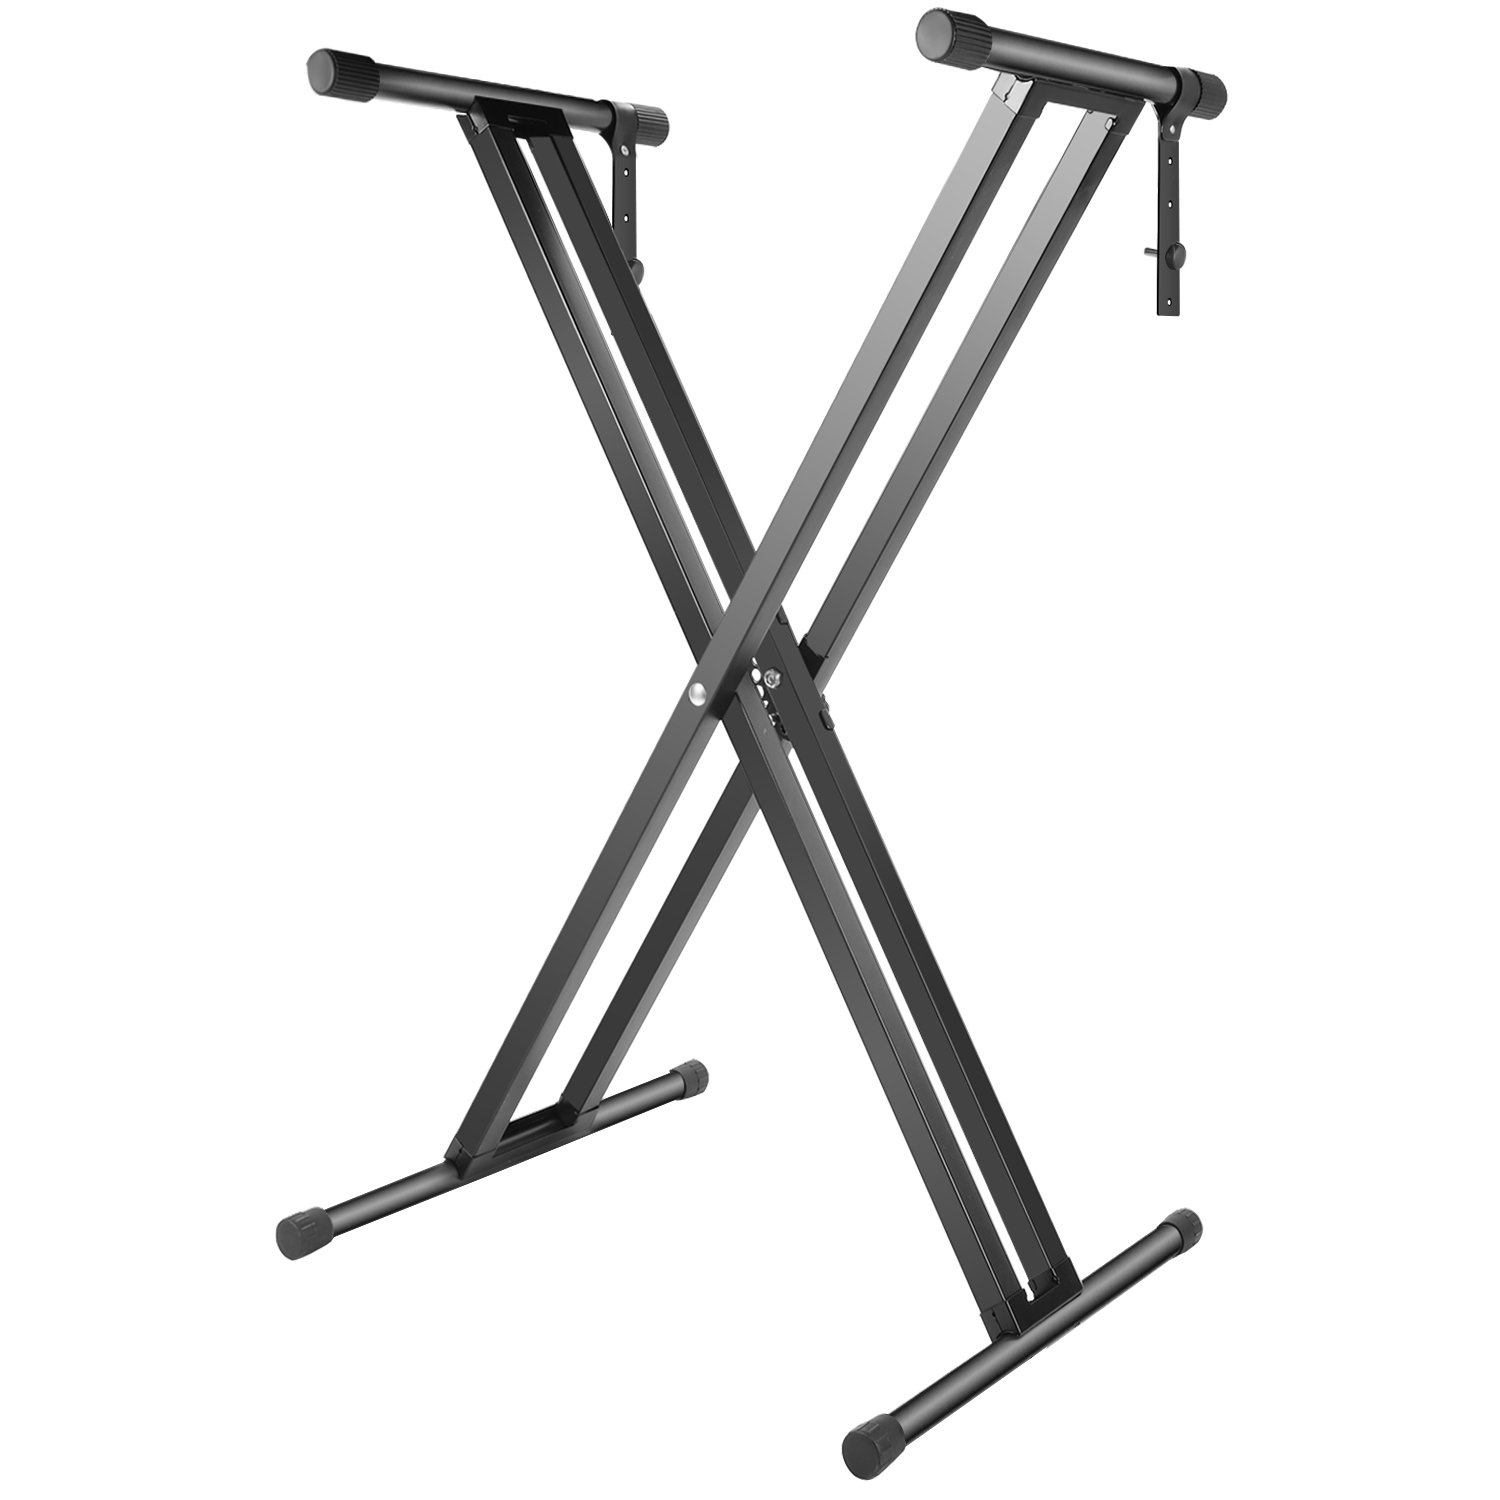 Neewer Double-Braced X Frame Piano Keyboard Stand with Locking Straps, Foldable Solid Iron Construction, 34.6 inches Adjustable Height for Most Keyboards (Black)